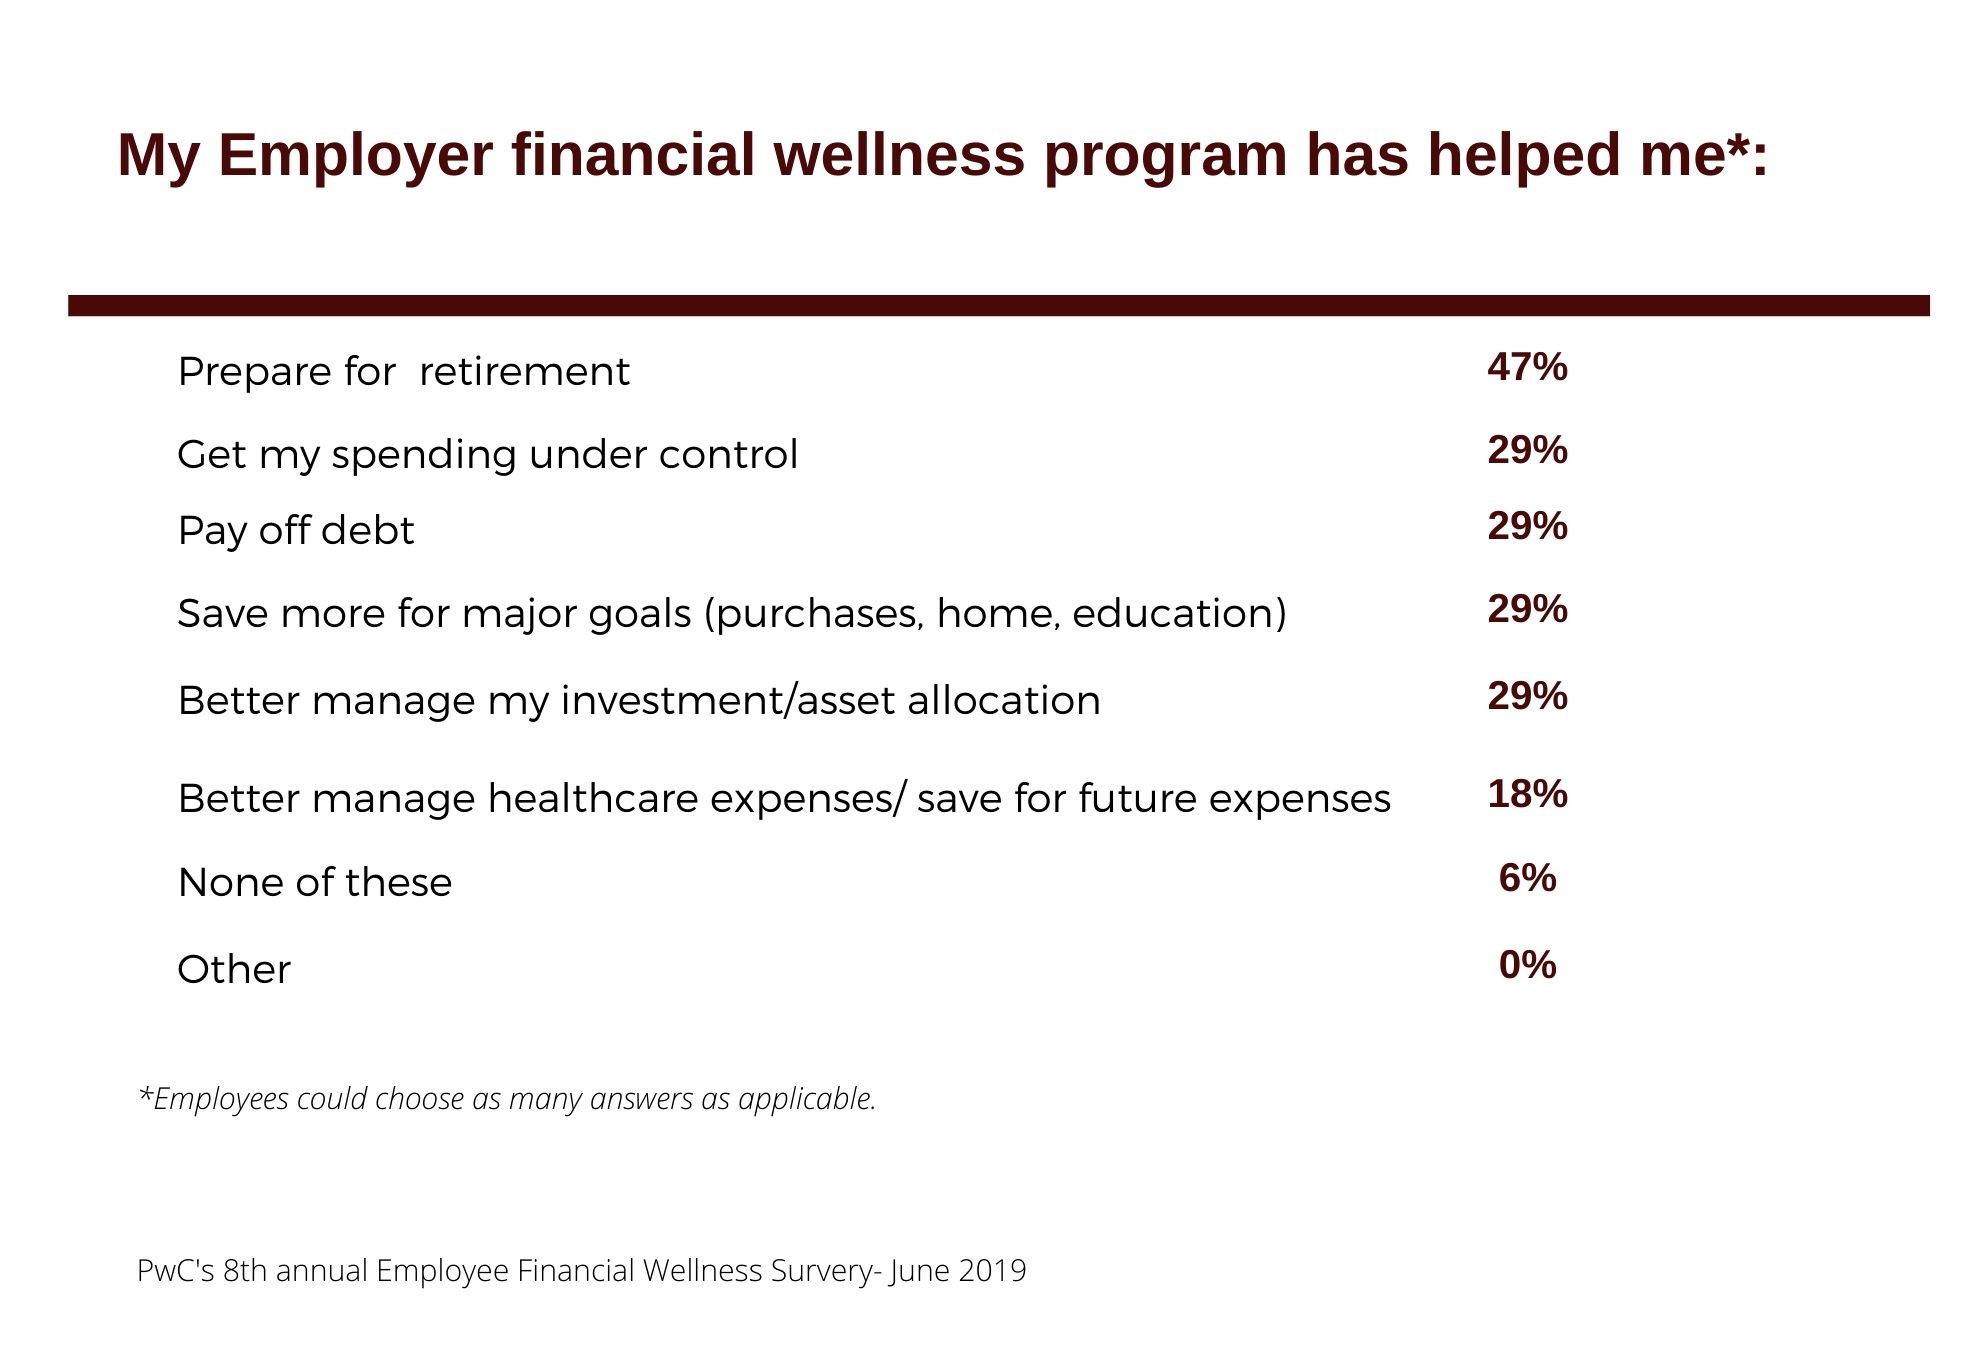 My Employer financial wellness program has helped me*: Prepare for retirement 47%, Get my spending under control 29%, Pay off debt 29%, Save more for major goals (purchases, home, education) 29%, Better manage my investment/asset allocation 29%, Better manage healthcare expenses/save for future expenses 18%, None of these 6%, Other 0% *Employees could choose as many answers as applicable. PwC's 8th annual Employee Financial Wellness Survery-June 2019